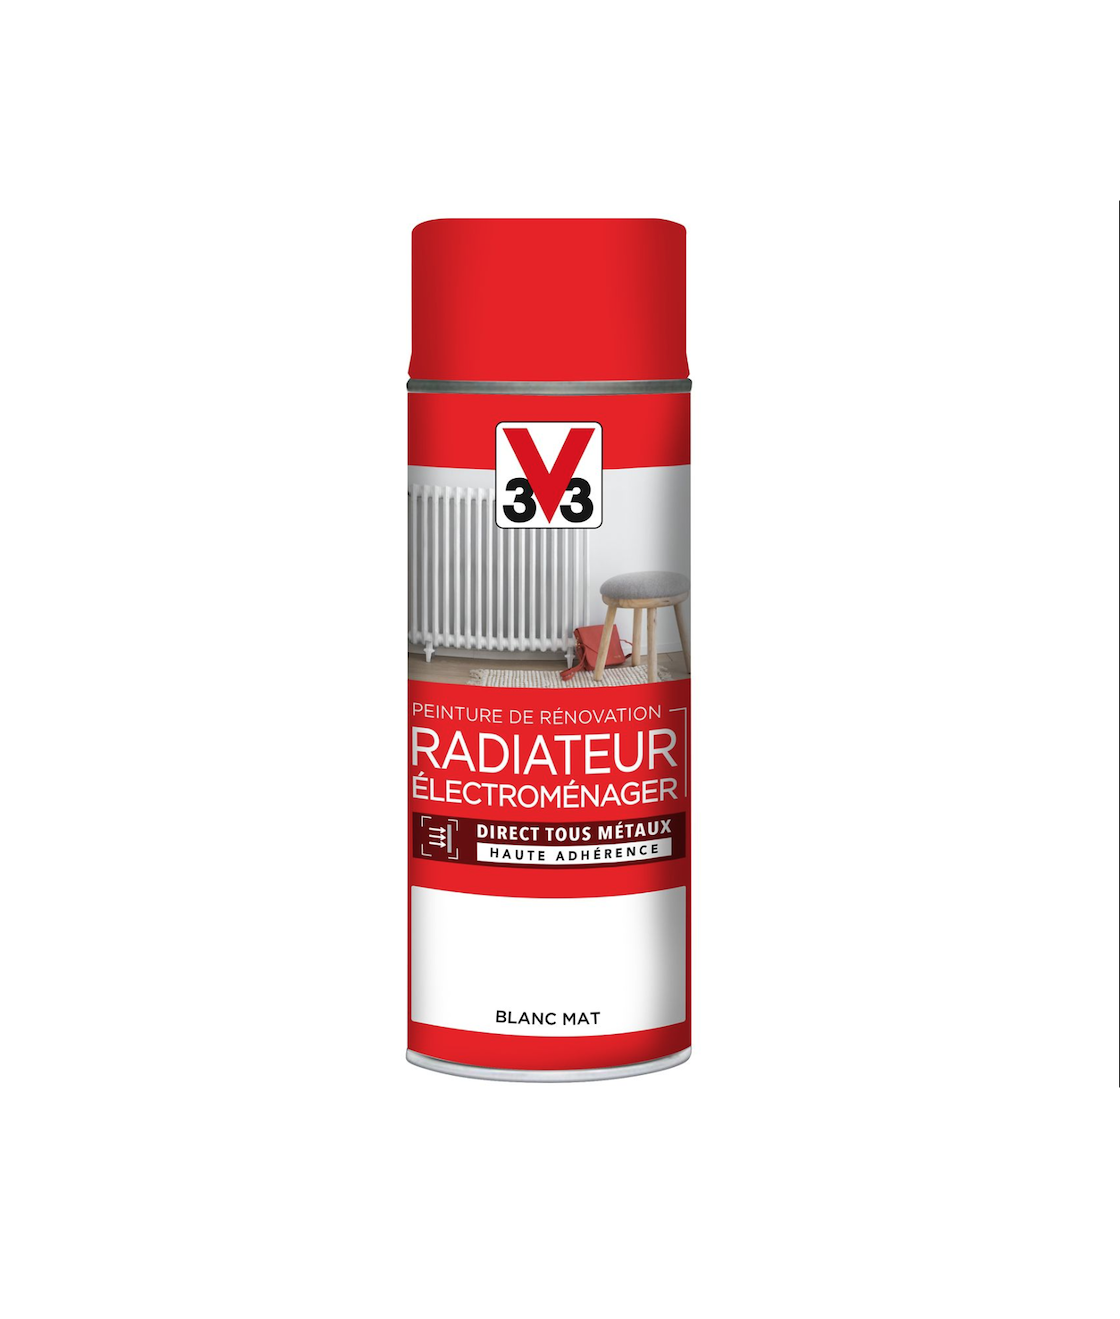 V33 AEROSOL PEINTURE RENOVATION RADIATEUR ELECTROMENAGER BLANC MAT SPRAY CAN BOMBE BRICOLAGE DECORATION MAISON 3153895121149 COMASOUND KARTEL CSK ONLINE